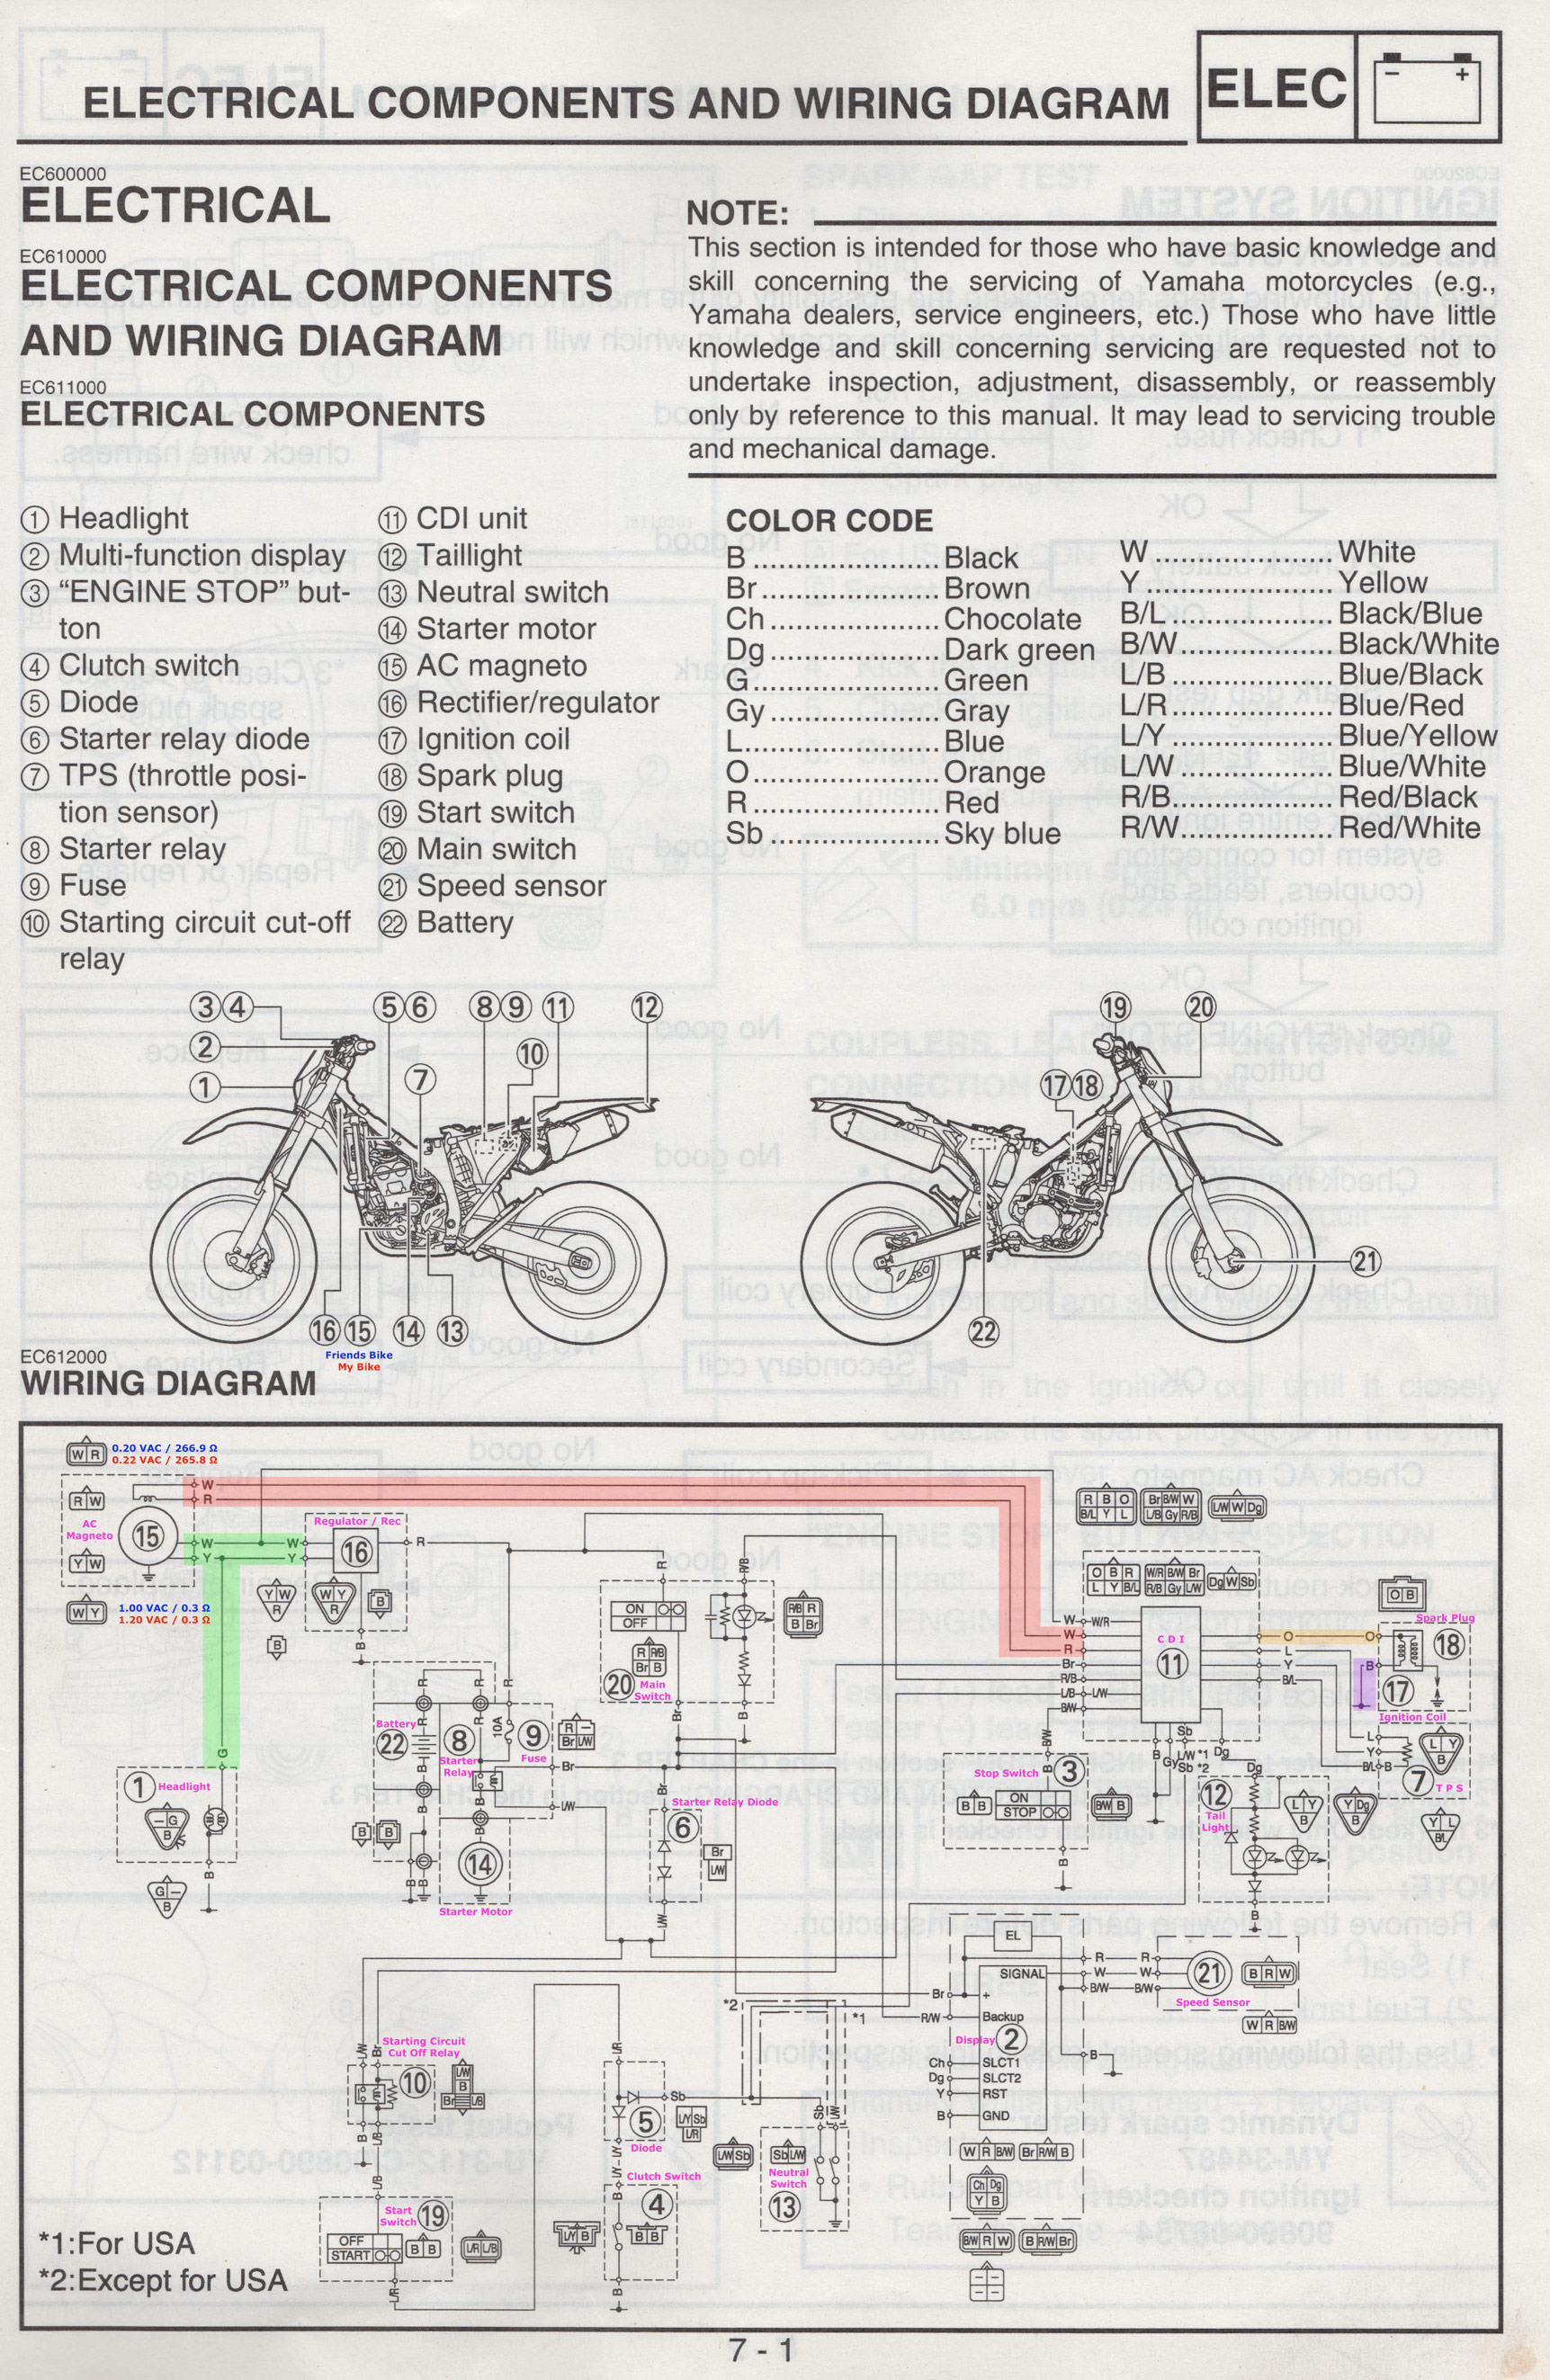 wire02 advanced electrical help wr450 no spark page 2 adventure rider 2012 wr450f wiring diagram at soozxer.org